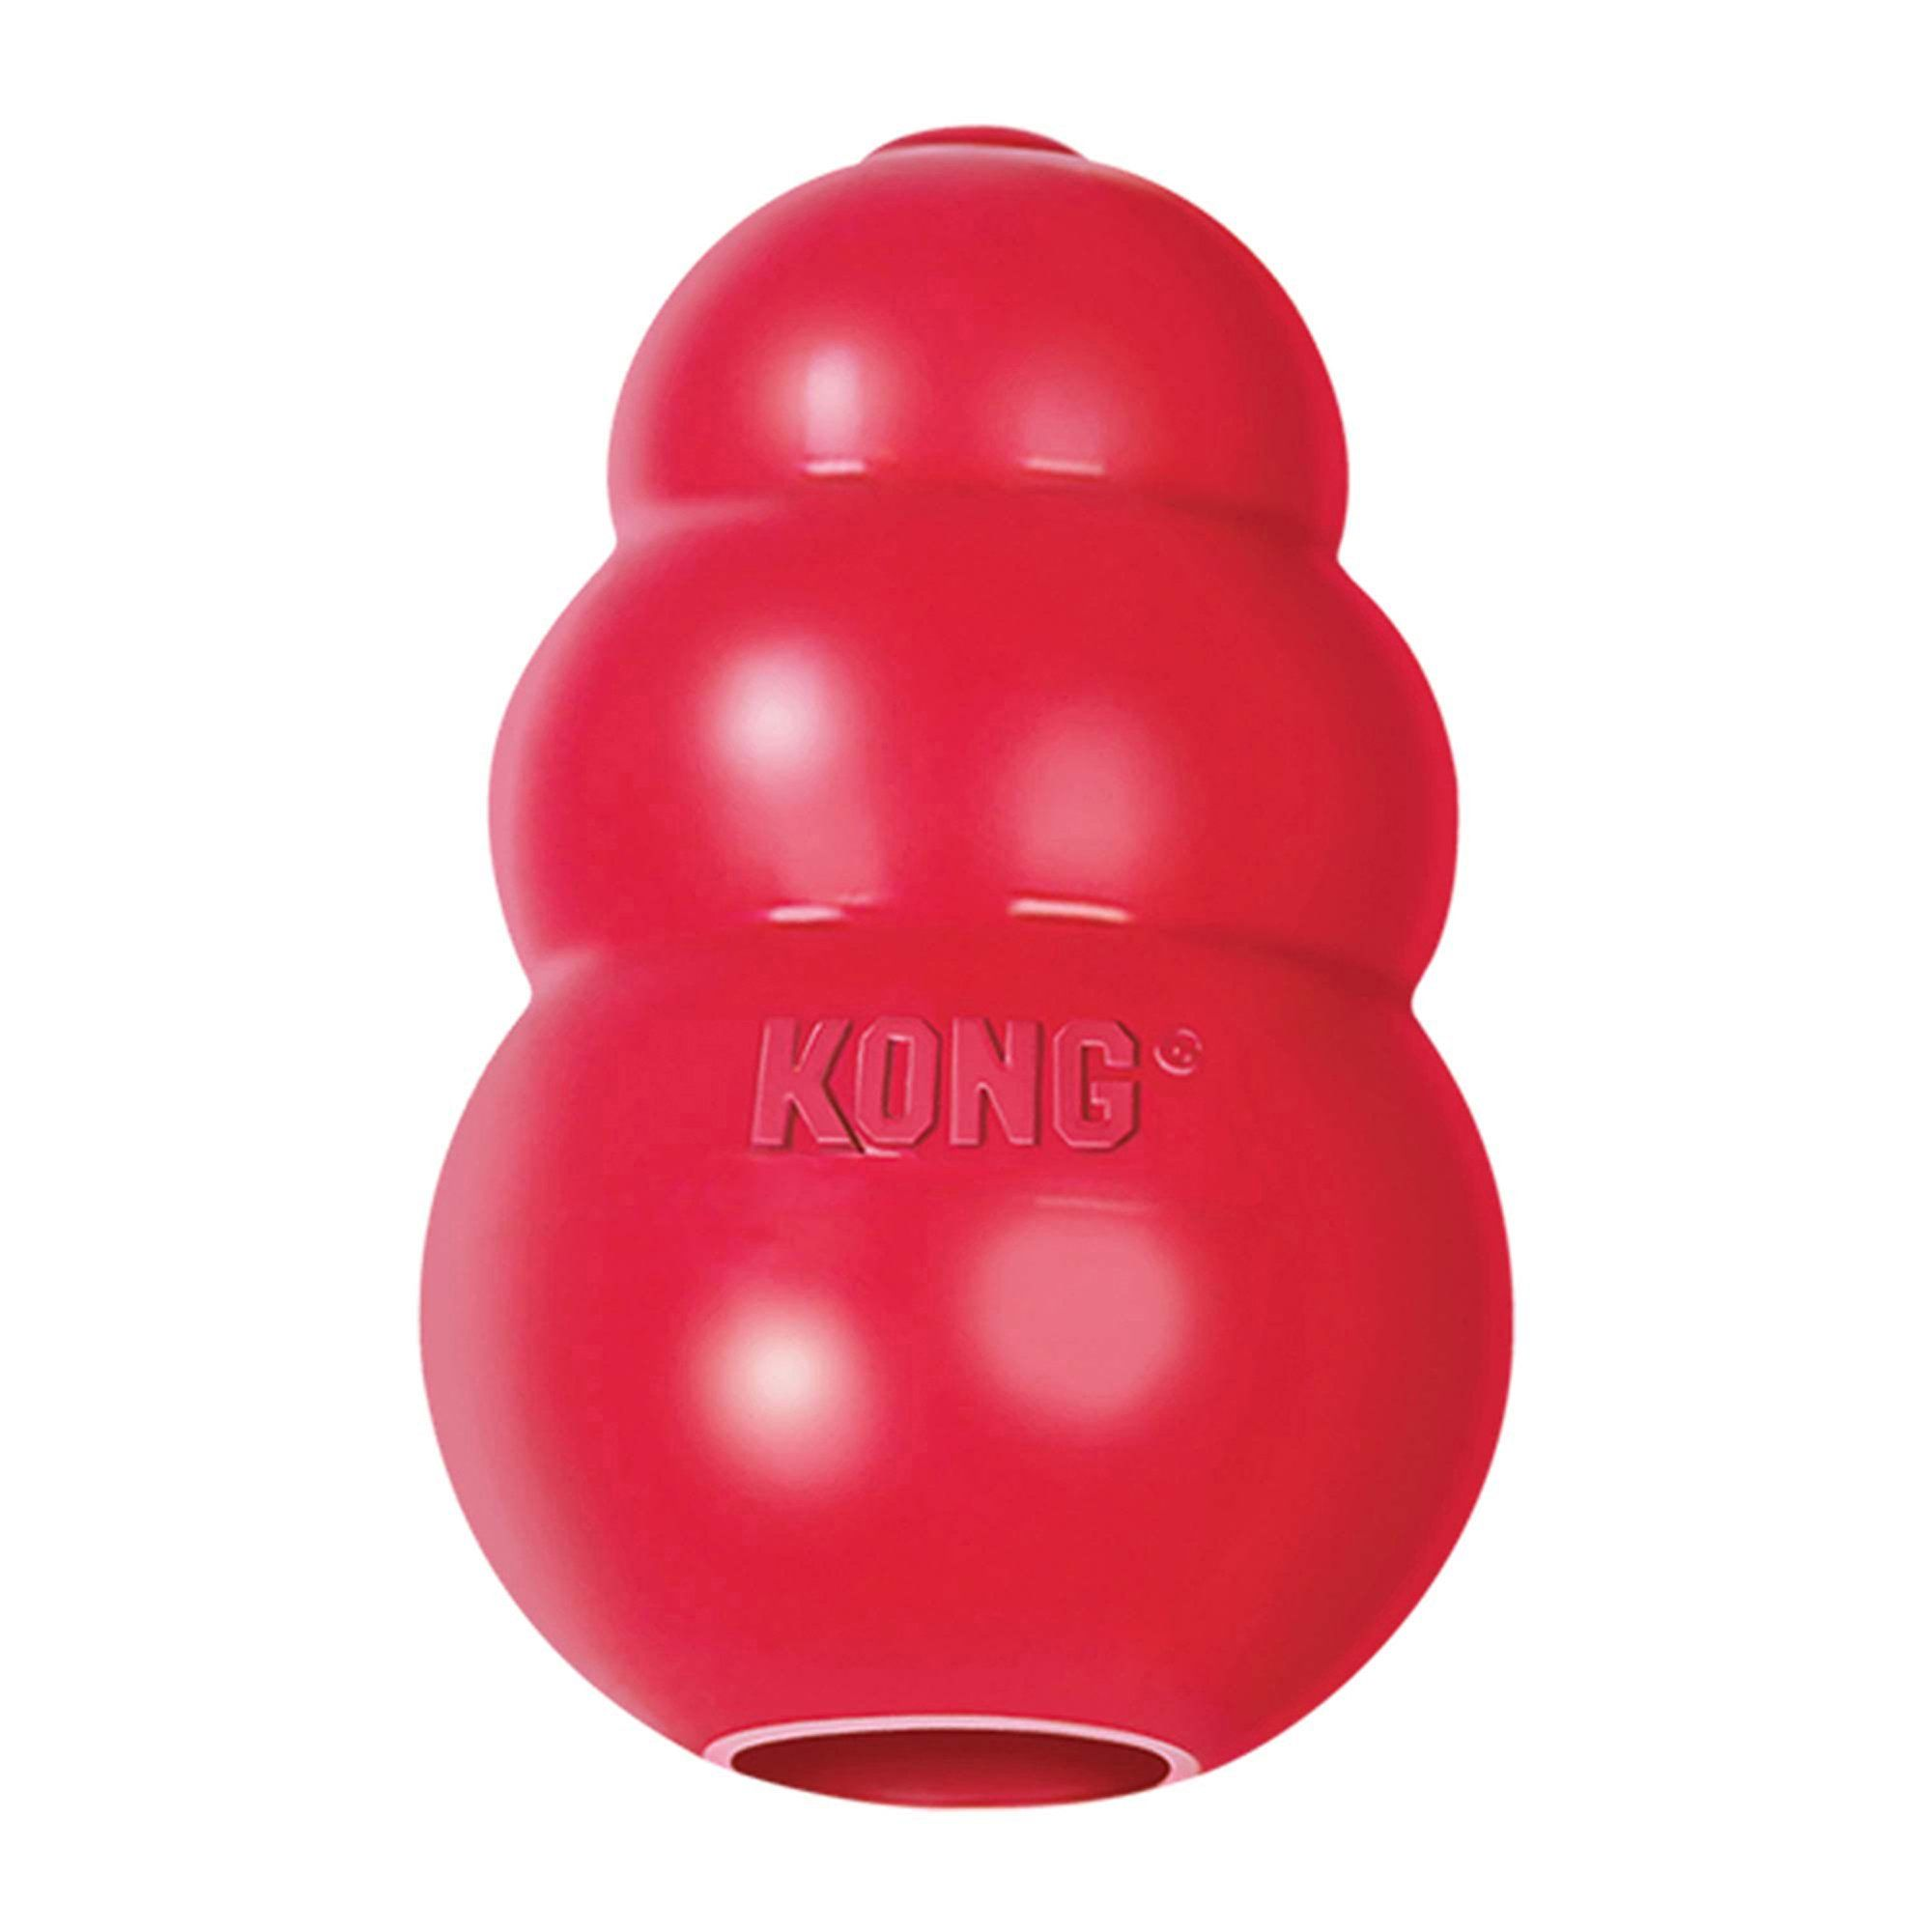 Kong Classic Dog Toy Medium Red Kong Dog Toys Dog Chew Toys